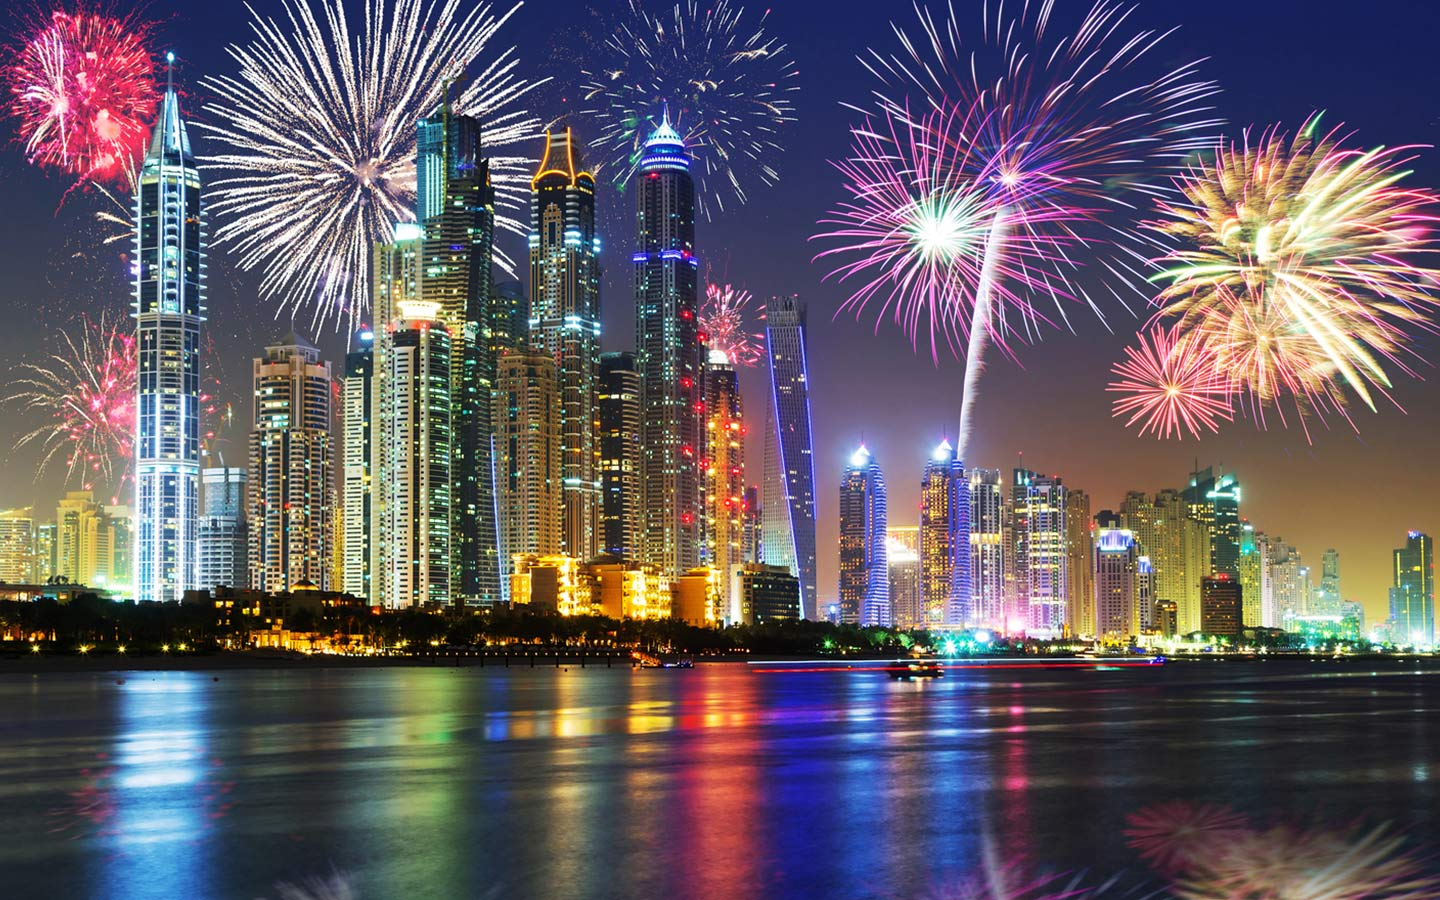 Fireworks at JBR Beach for New Year's Eve celebrations in Dubai